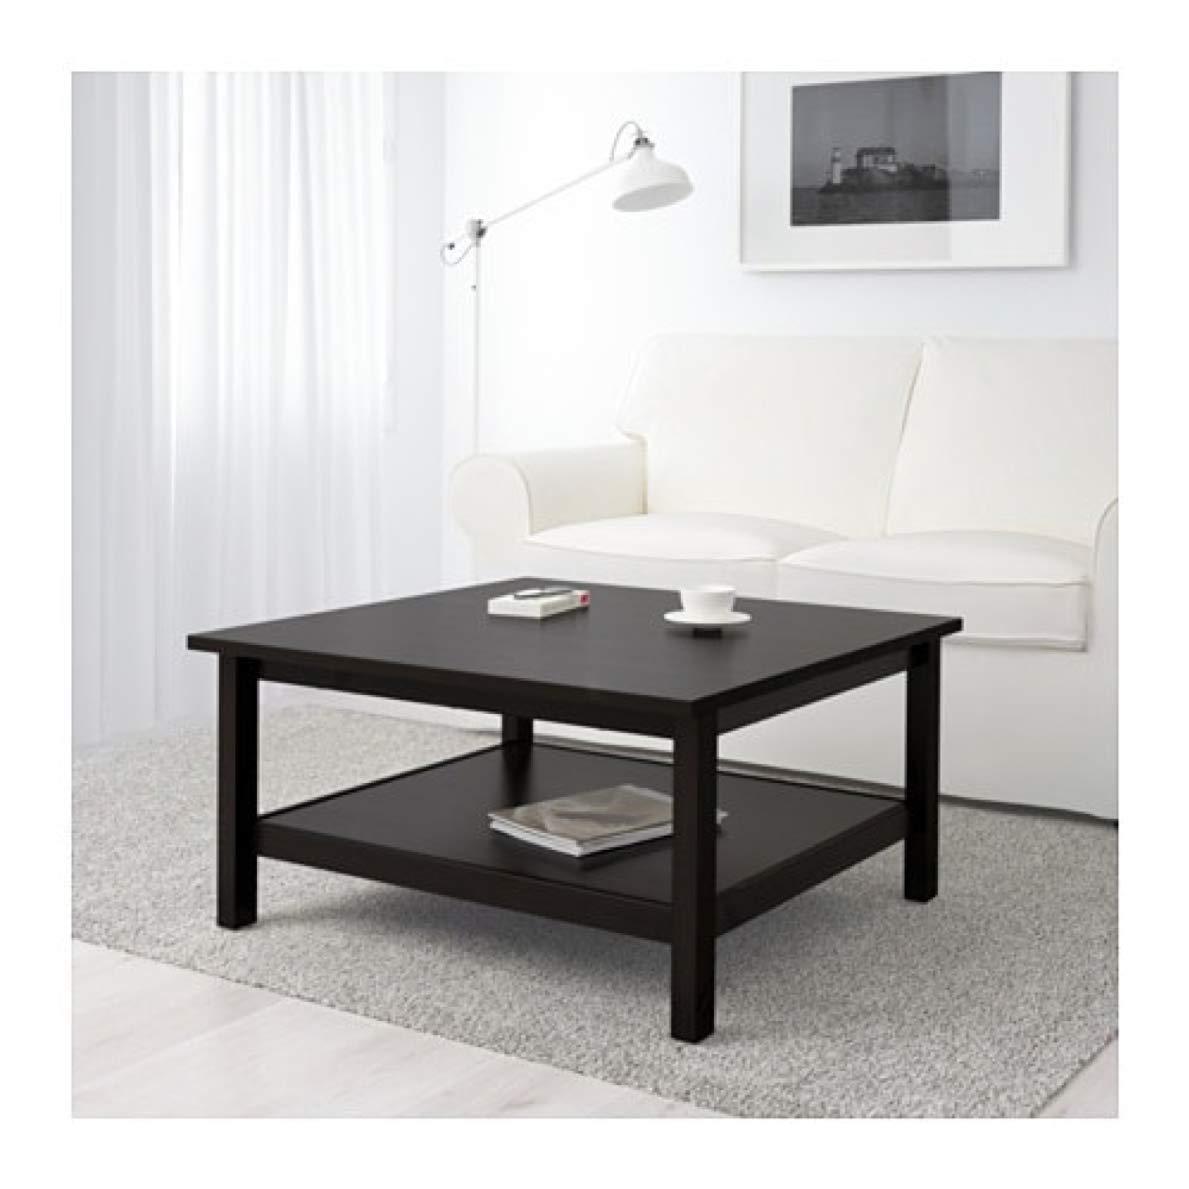 Superb Amazon Com Ikea Hemnes Coffee Table Black Brown 101 762 92 Pabps2019 Chair Design Images Pabps2019Com